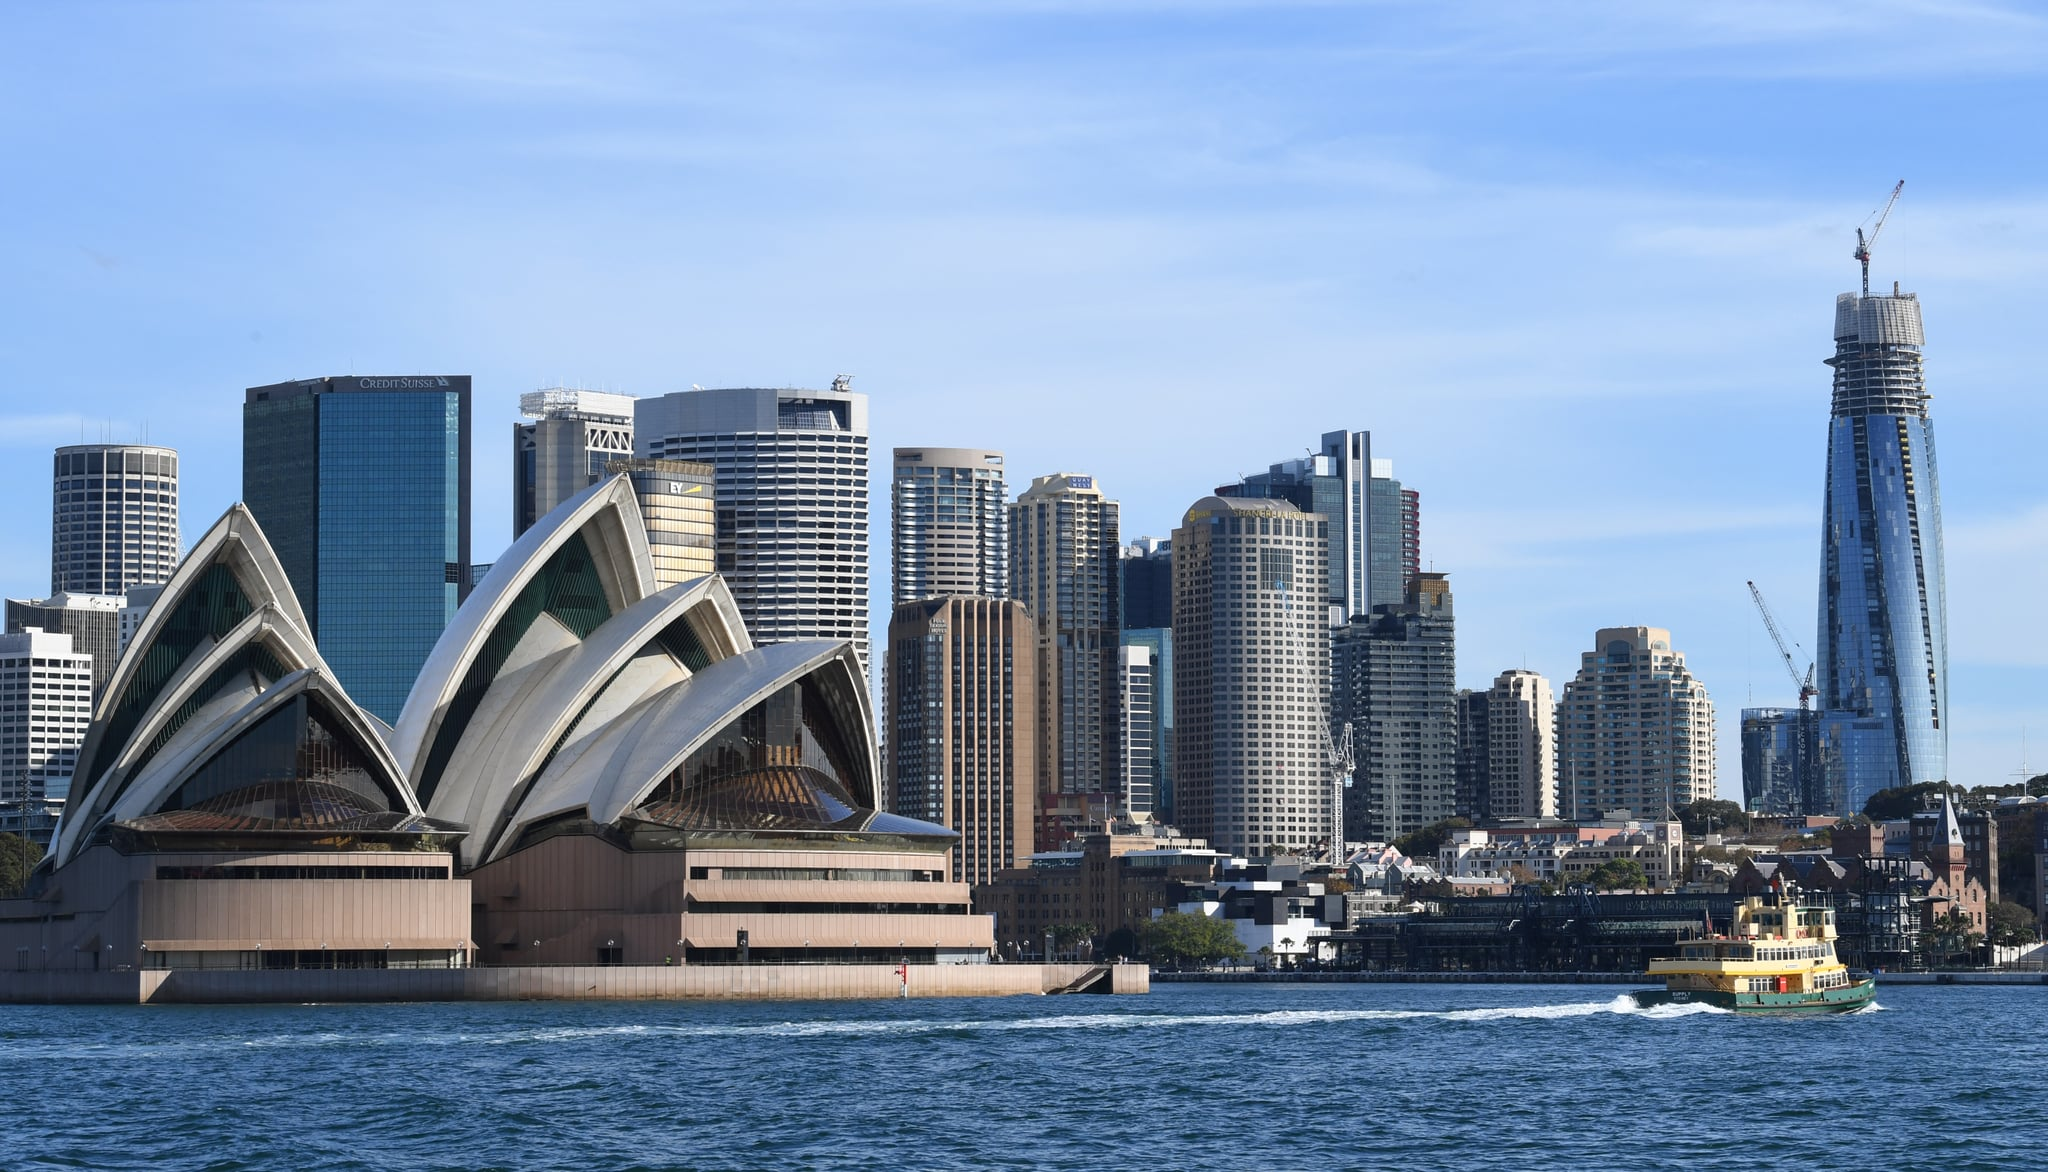 SYDNEY, AUSTRALIA - MAY 12: A Sydney ferry passes the Opera House and skyline of the CBD area on May 12, 2020 in Sydney, Australia. There were no new coronavirus infections recorded in New South Wales for the first time since the pandemic began. 6,048 residents were tested in the 24 hours to 8pm on May 11, 2020 and NSW Premier Gladys Berejiklian said it was a major milestone in the state's fight against the virus. (Photo by James D. Morgan/Getty Images)